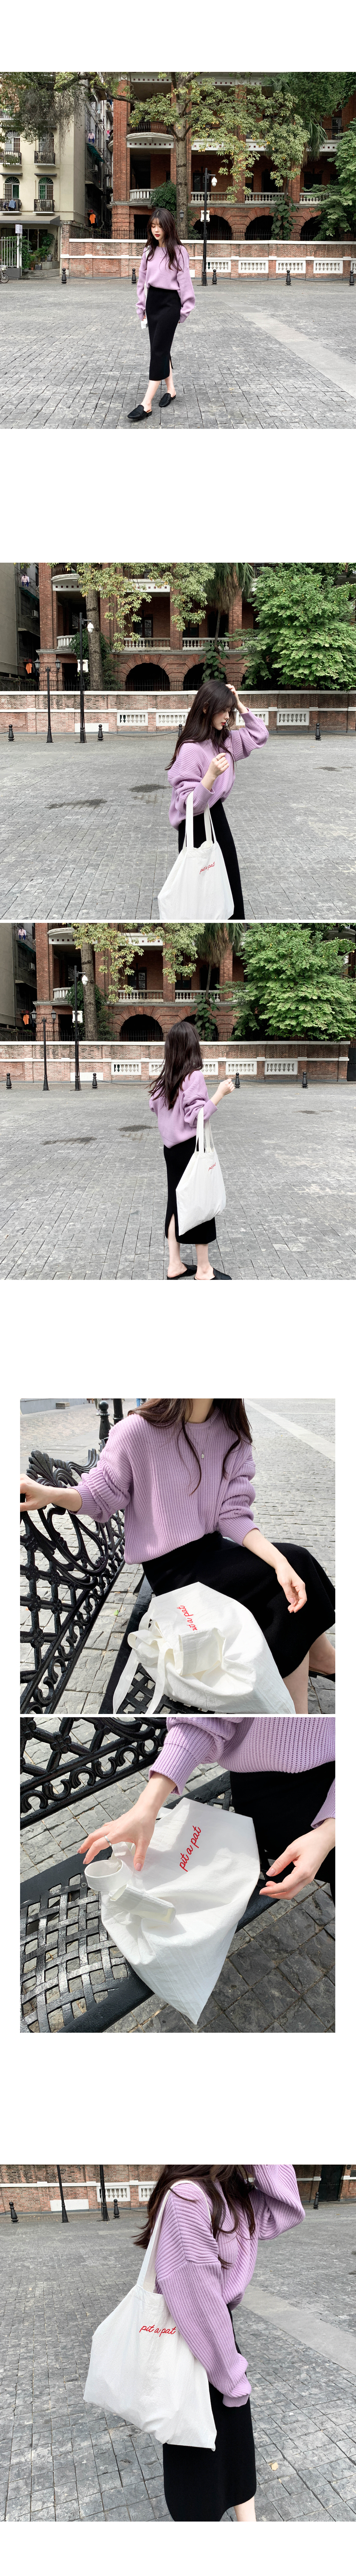 Spring Loose Fit Round Knit-Lavender Pink, Lemon Yellow